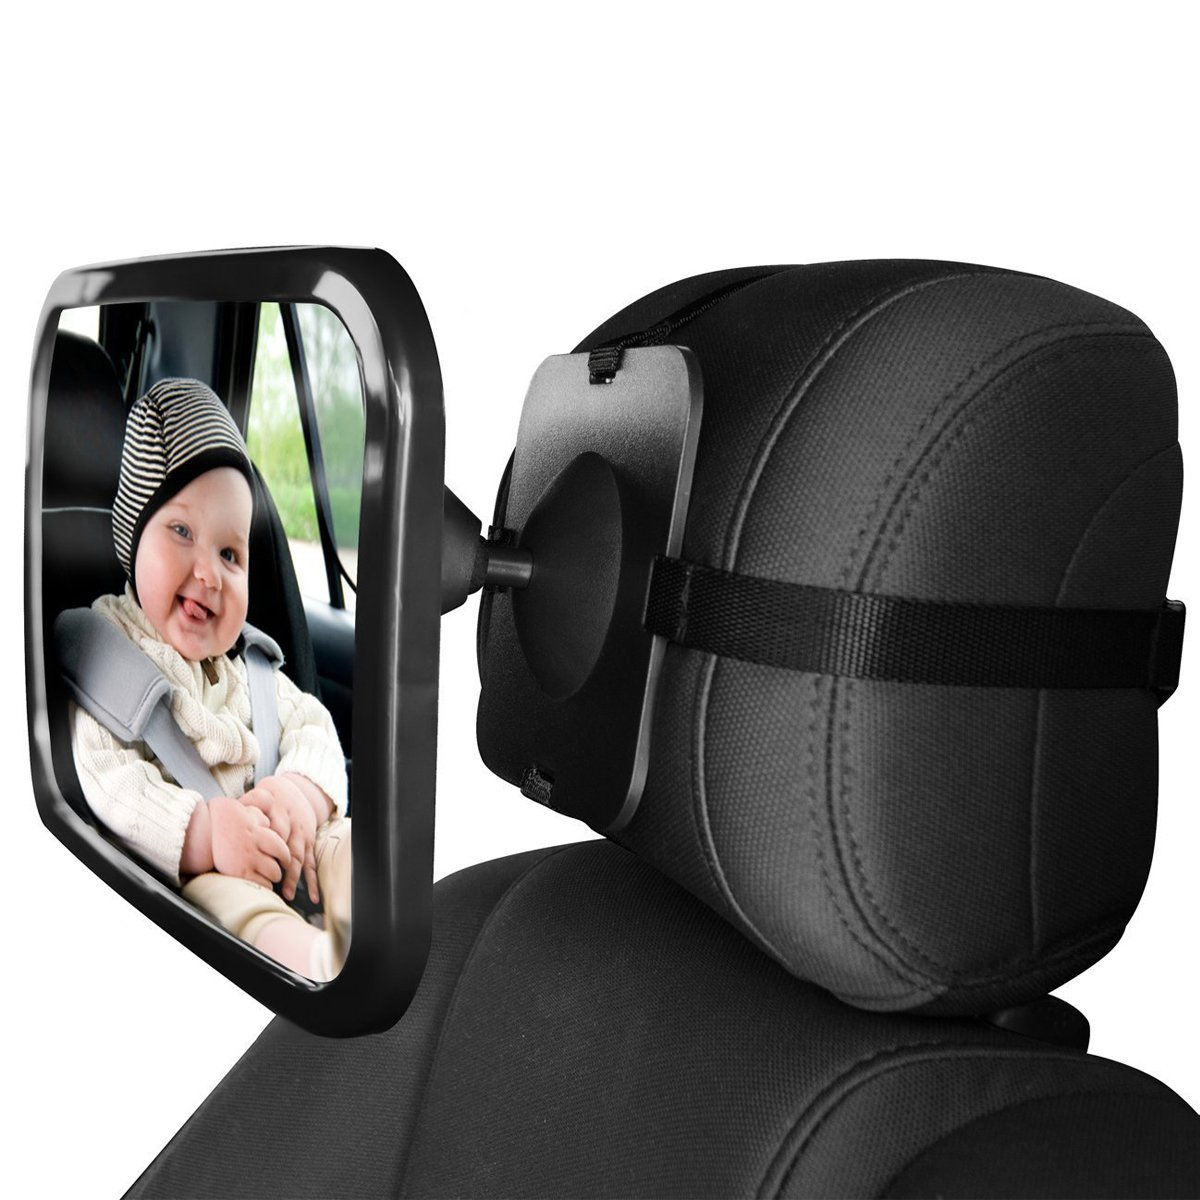 SONARIN Premium Quality Baby Car Mirror,100% Shatterproof,Fits Any Adjustable headrest,Adjustable Straps,Clear View of Infant in Rear Facing Car Seat,Secure,360° Rotation(Black)